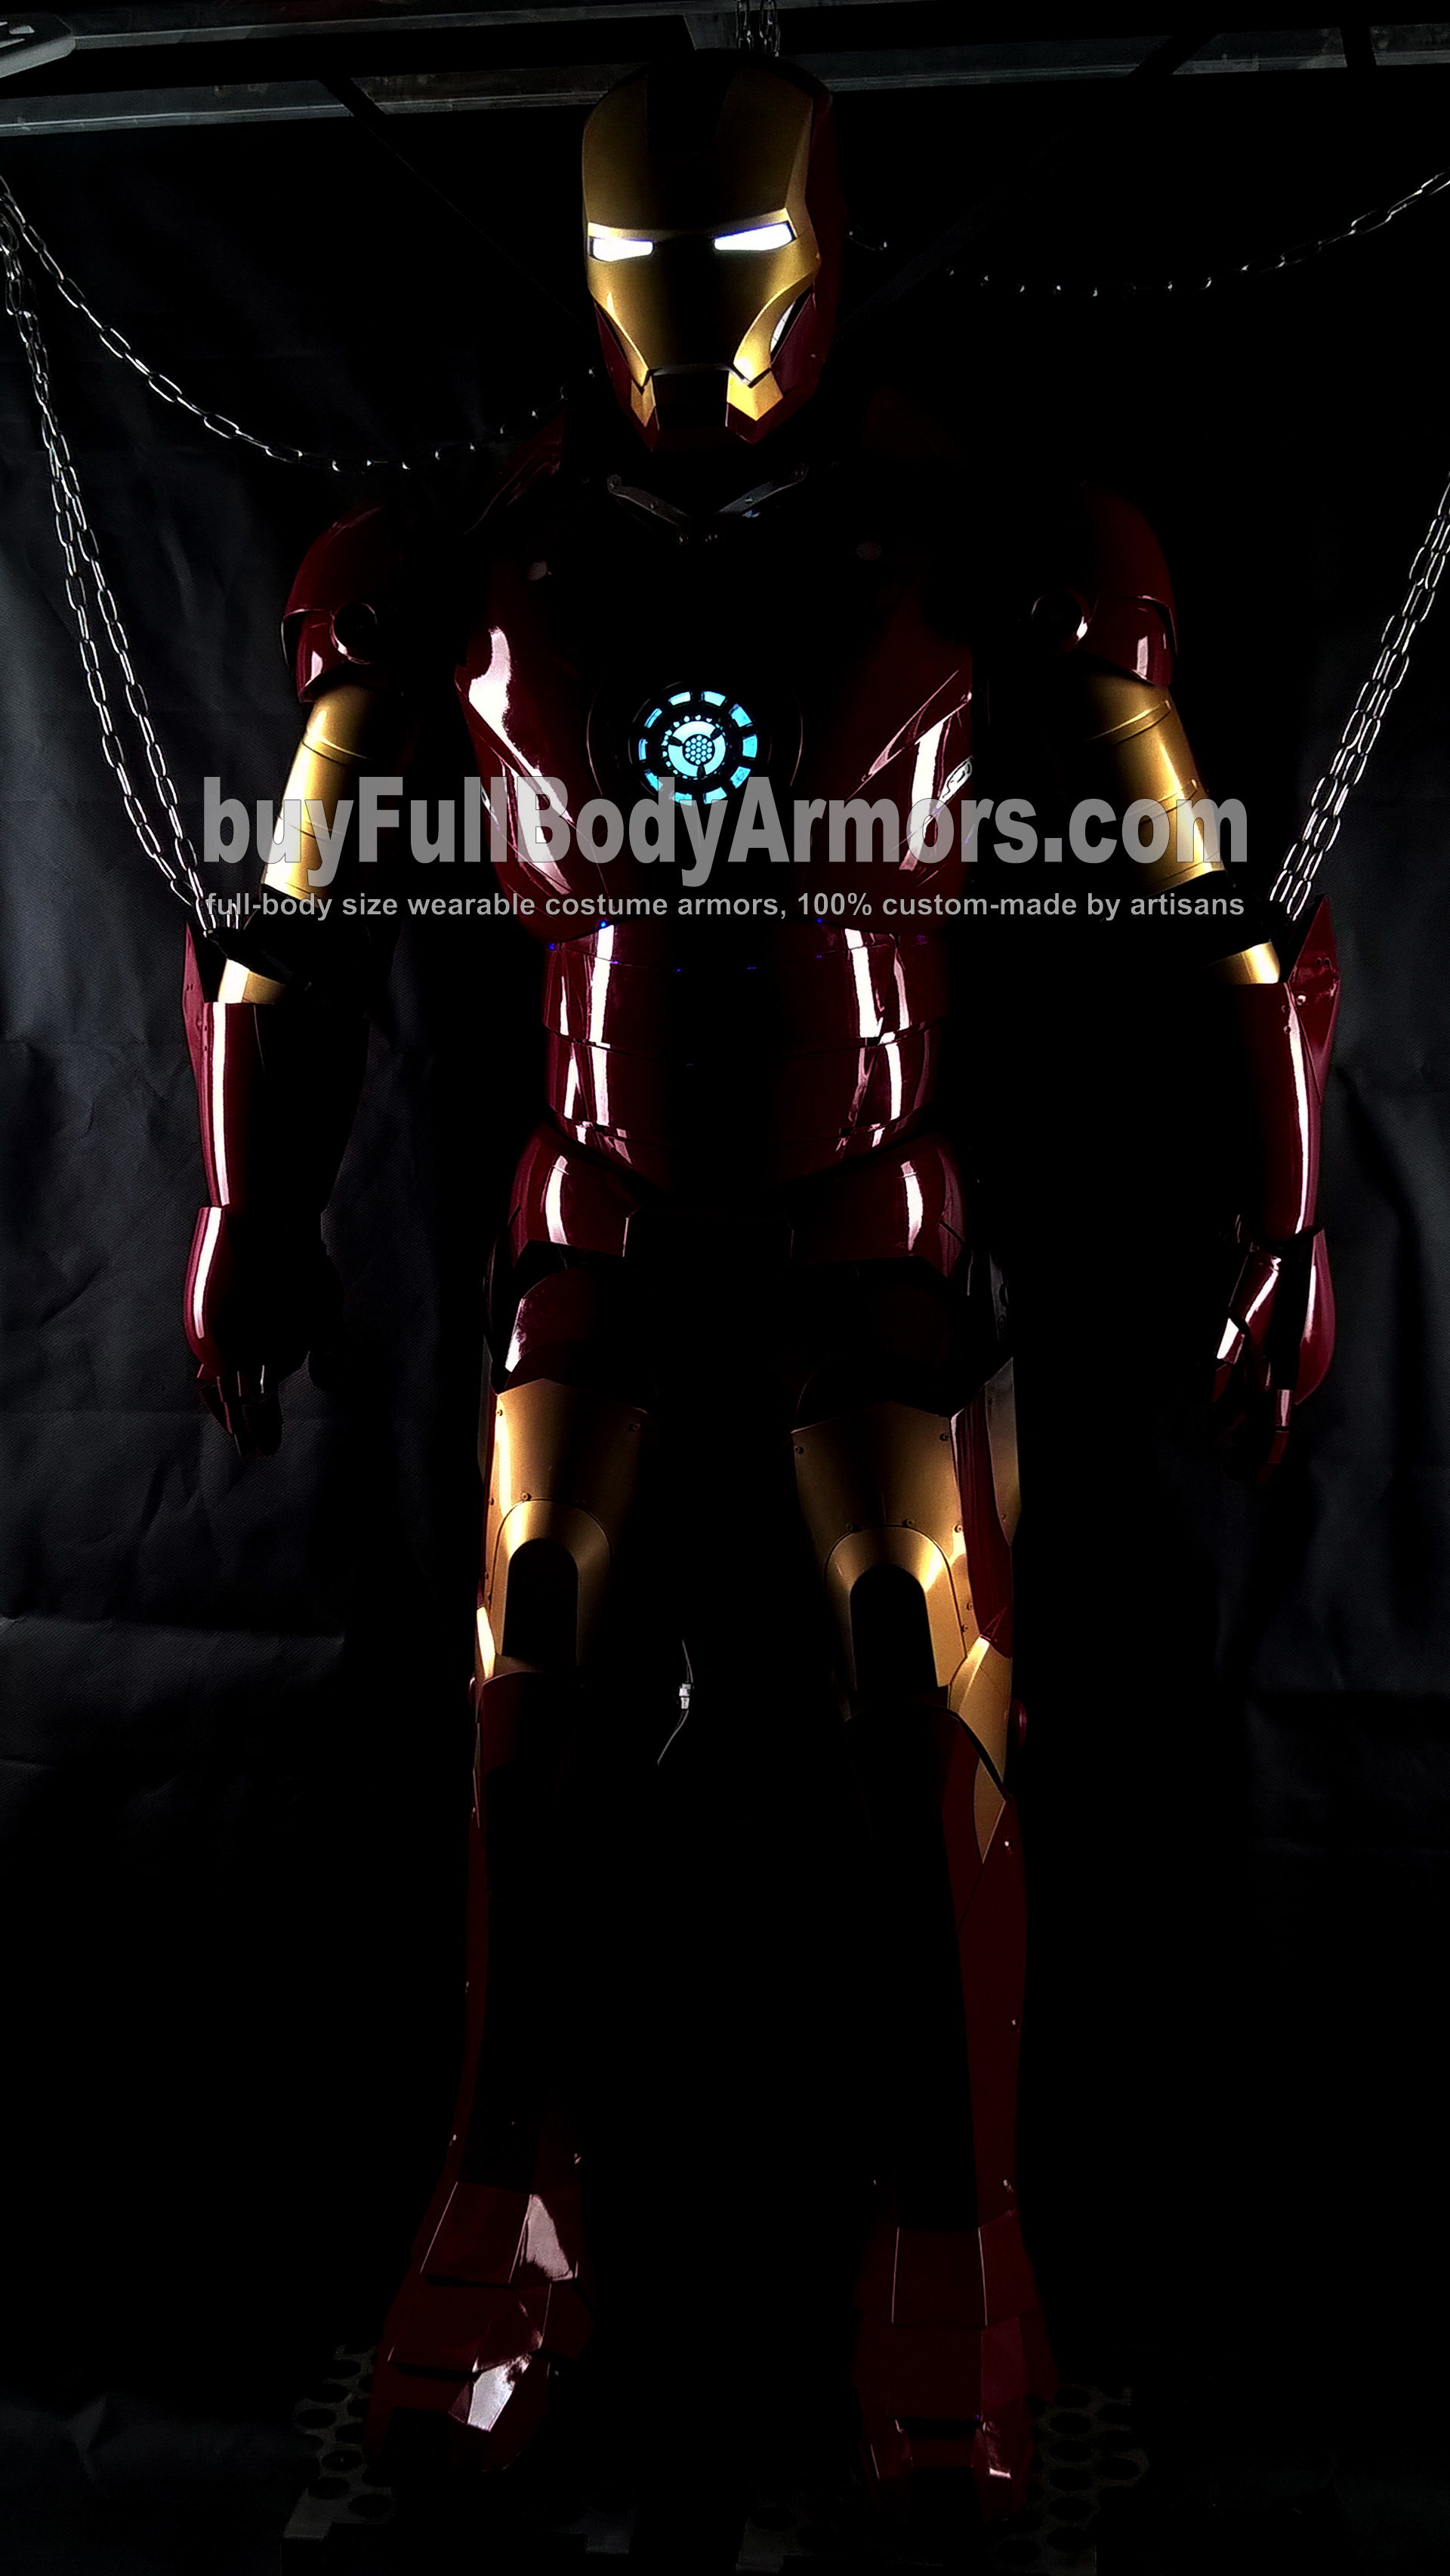 The Wearable Iron Man Suit Mark 3 III Armor Costume - Full Prototype 1